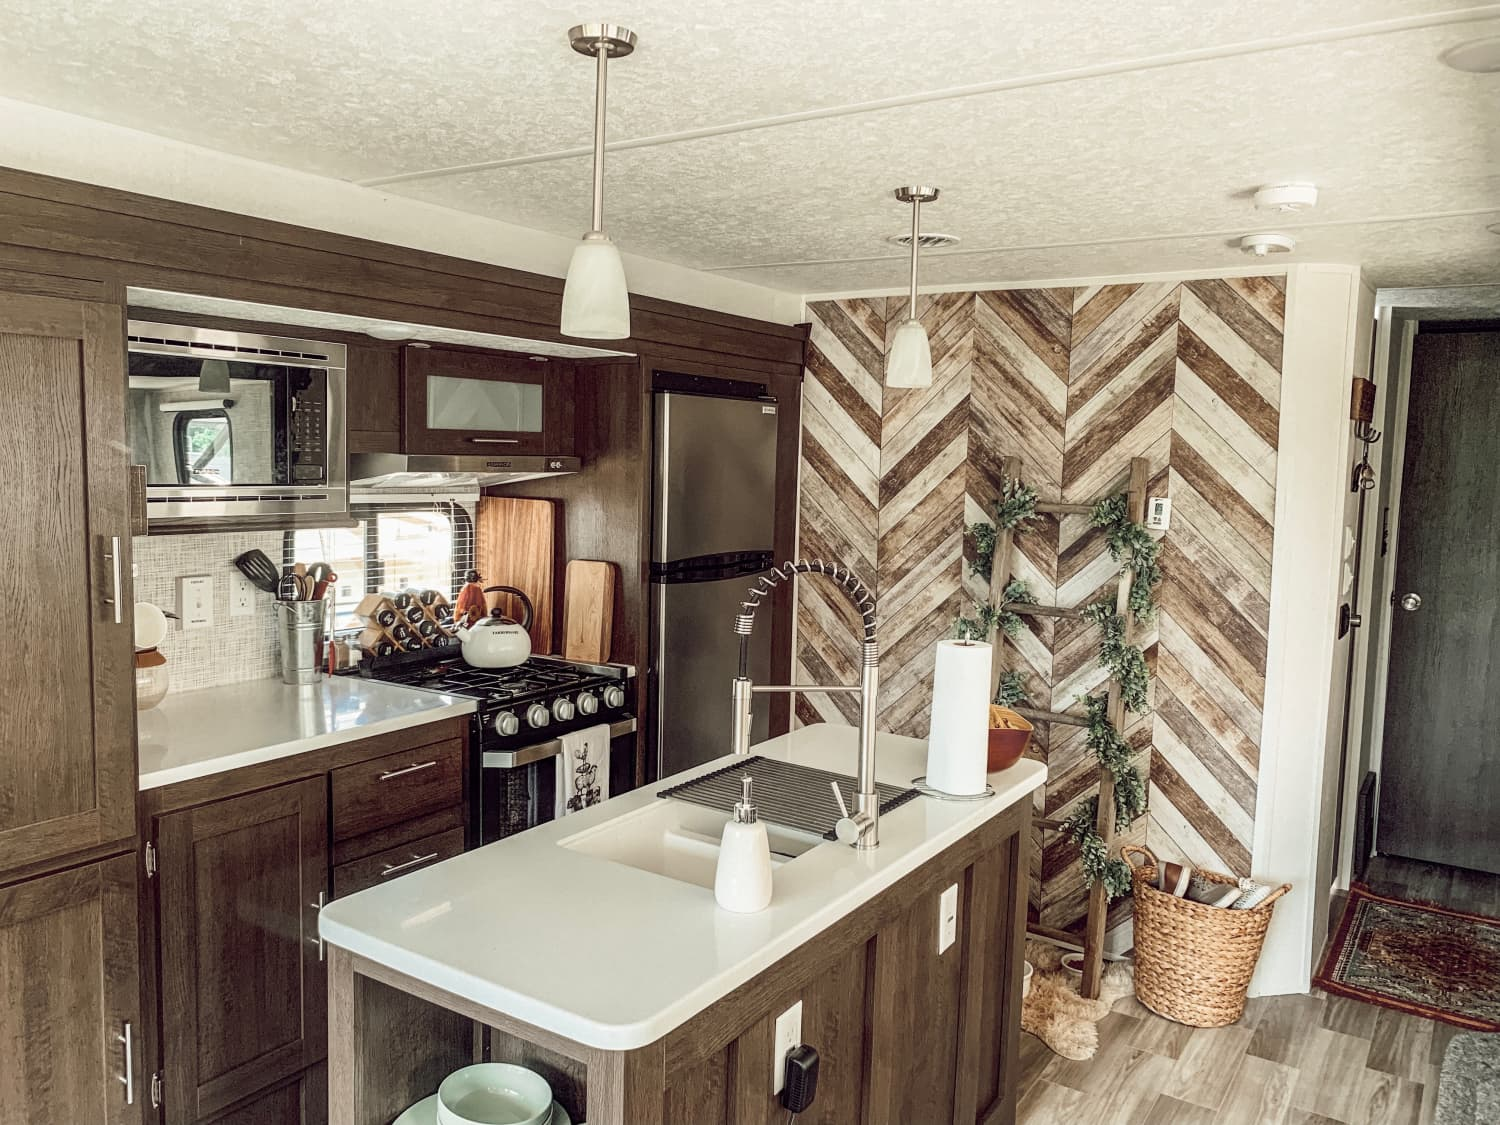 This 250-Square-Foot RV Is a Rustic Boho Farmhouse on Wheels